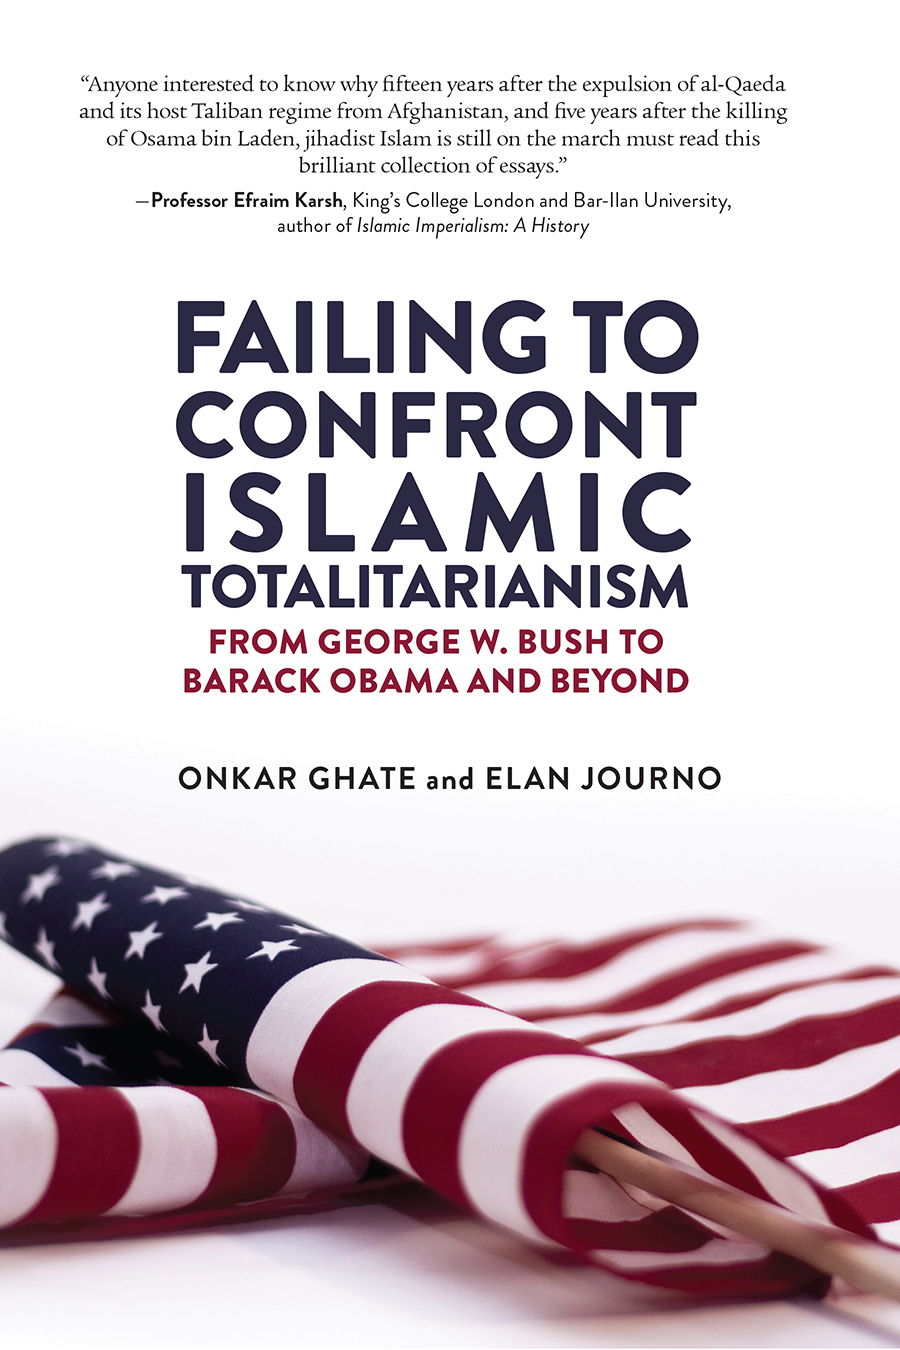 failing to confront islamic totalitarianism an interview elan journo is director of policy research at the ayn rand institute author of winning the unwinnable war america s self crippled response to islamic